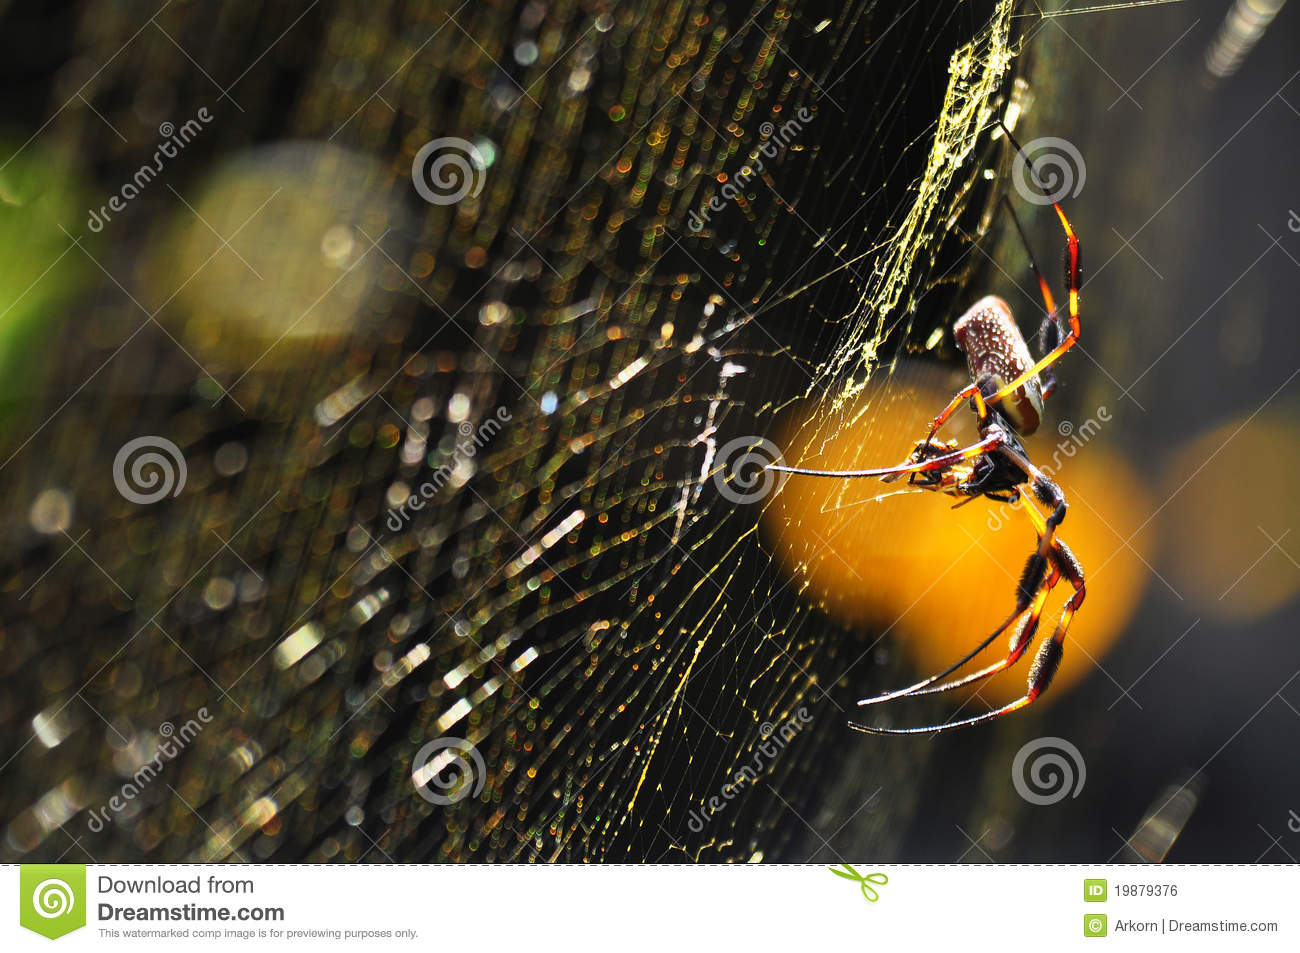 Golden Silk Orb-weaver Spider clipart #5, Download drawings